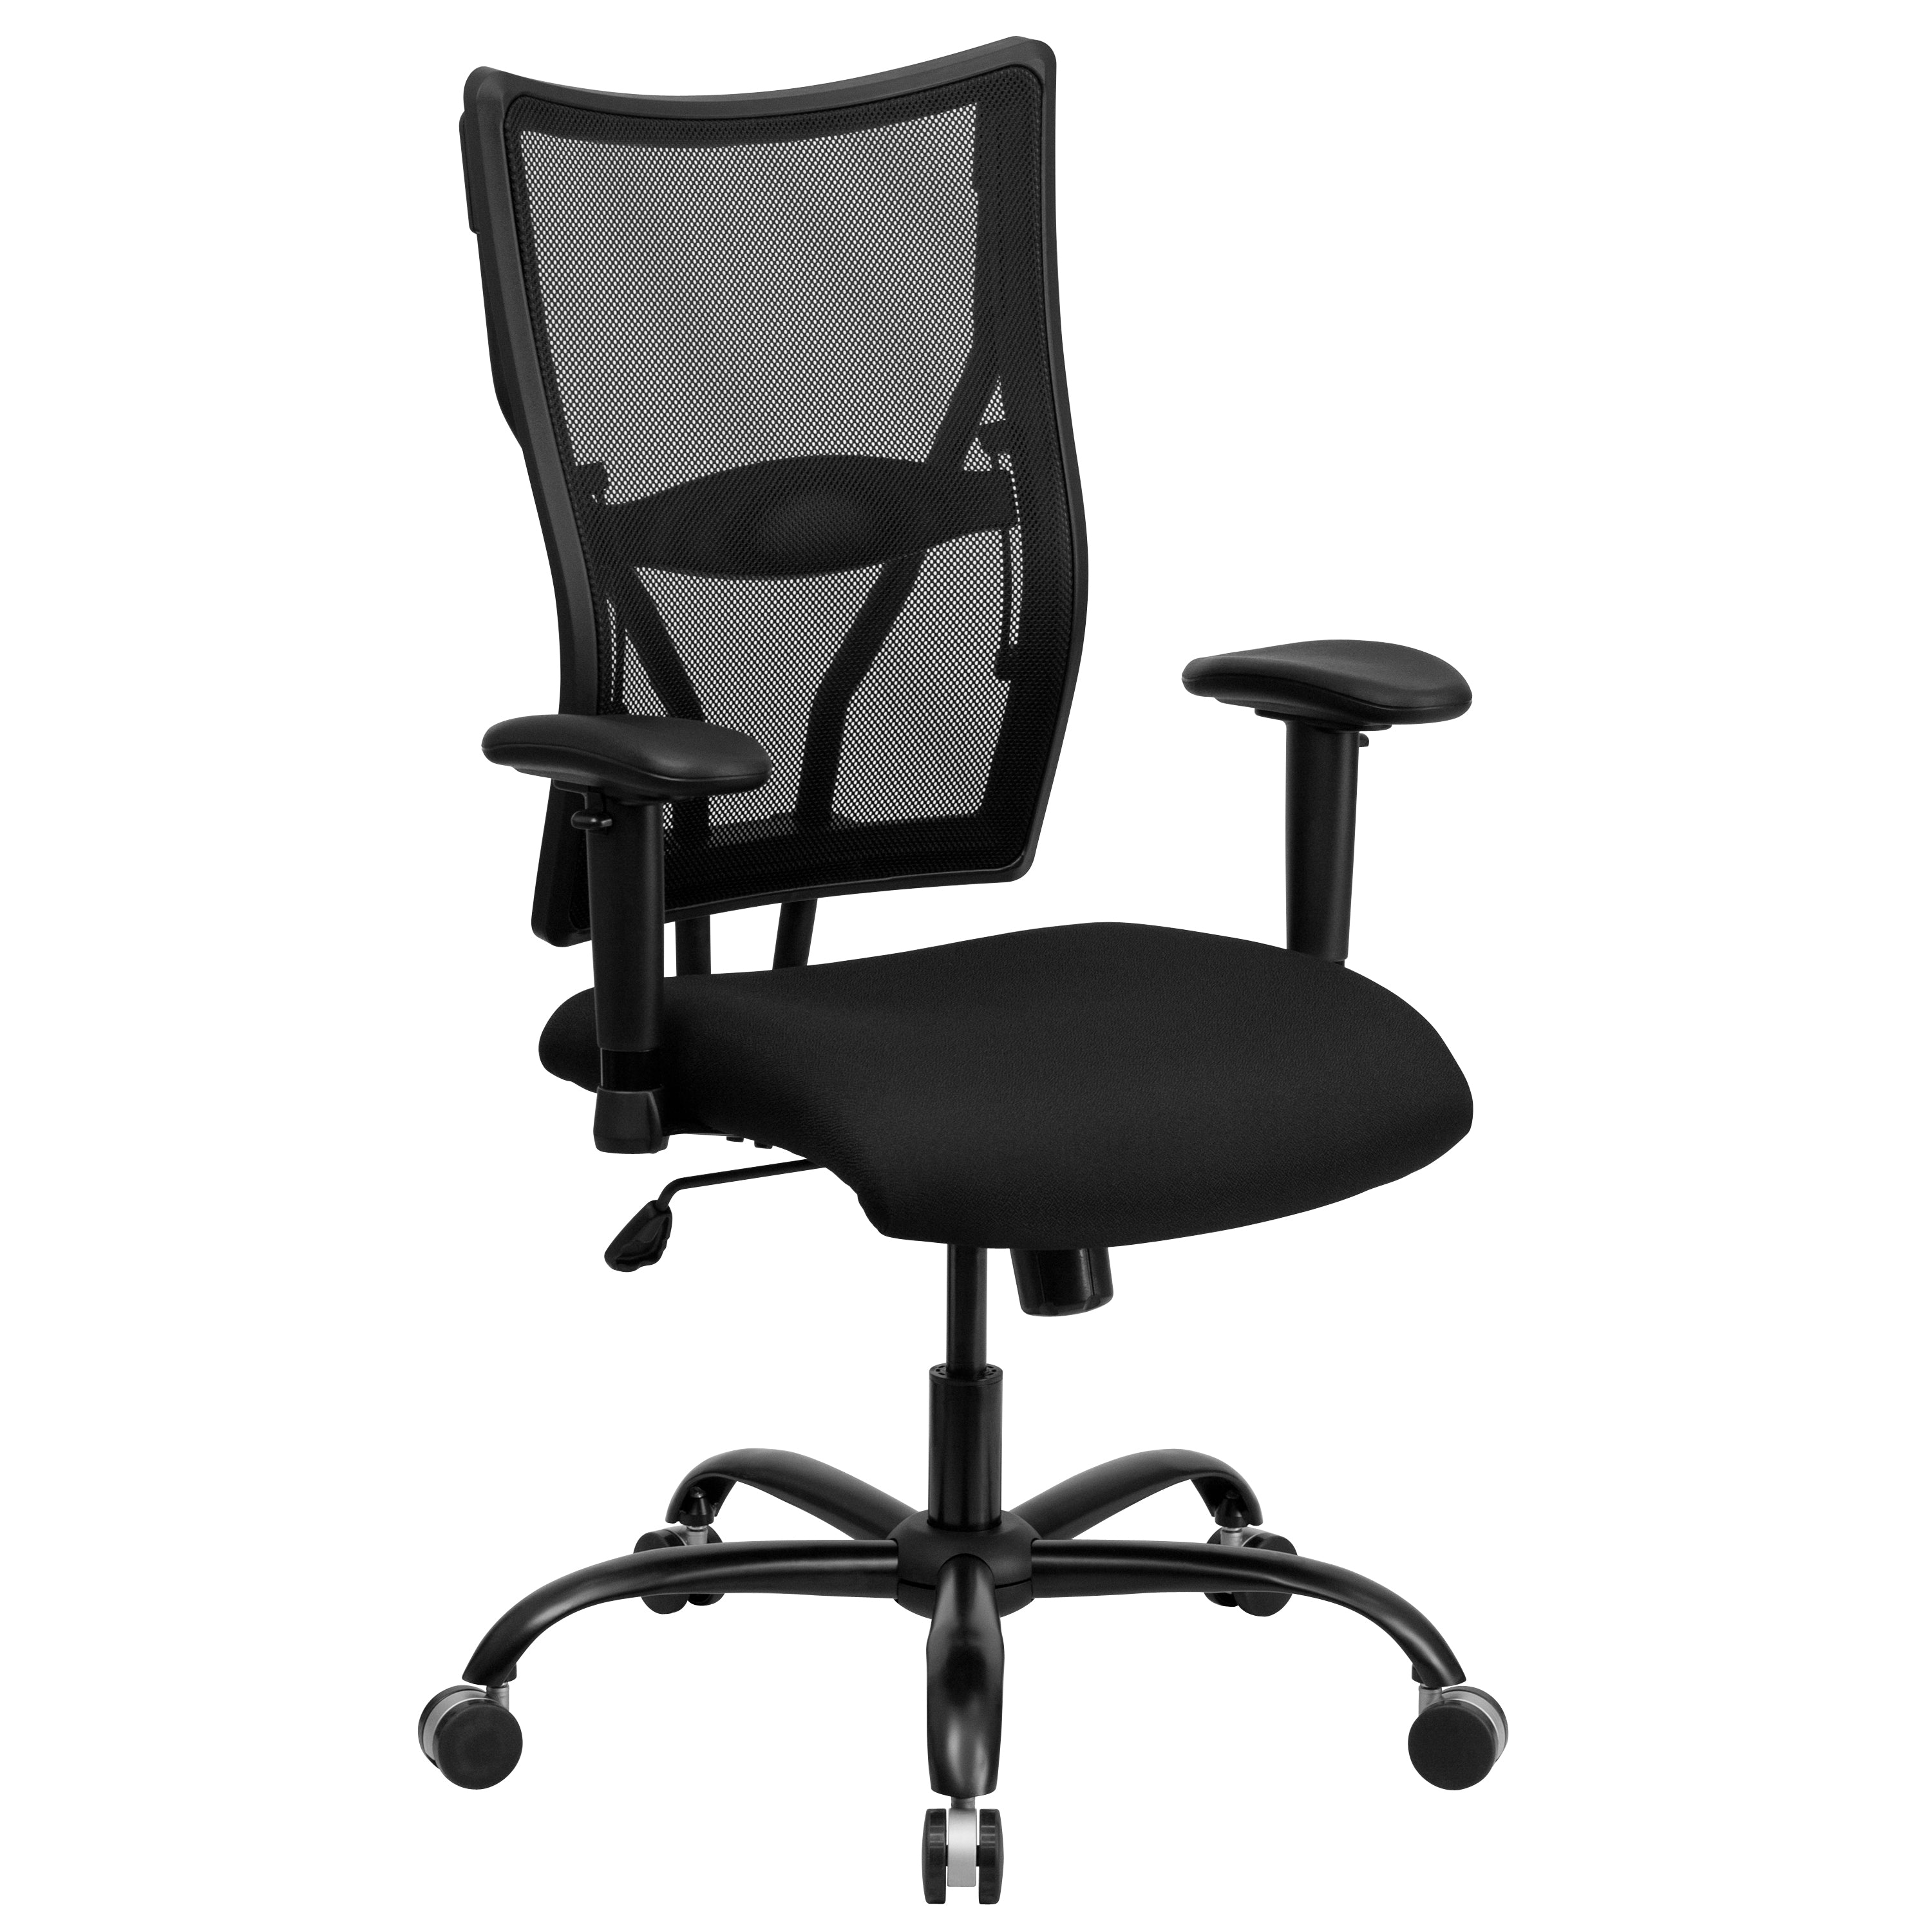 Admirable Hercules Series 400 Lb Capacity Big Tall Mesh Executive Swivel Office Chair With Height Adjustable Arms Theyellowbook Wood Chair Design Ideas Theyellowbookinfo